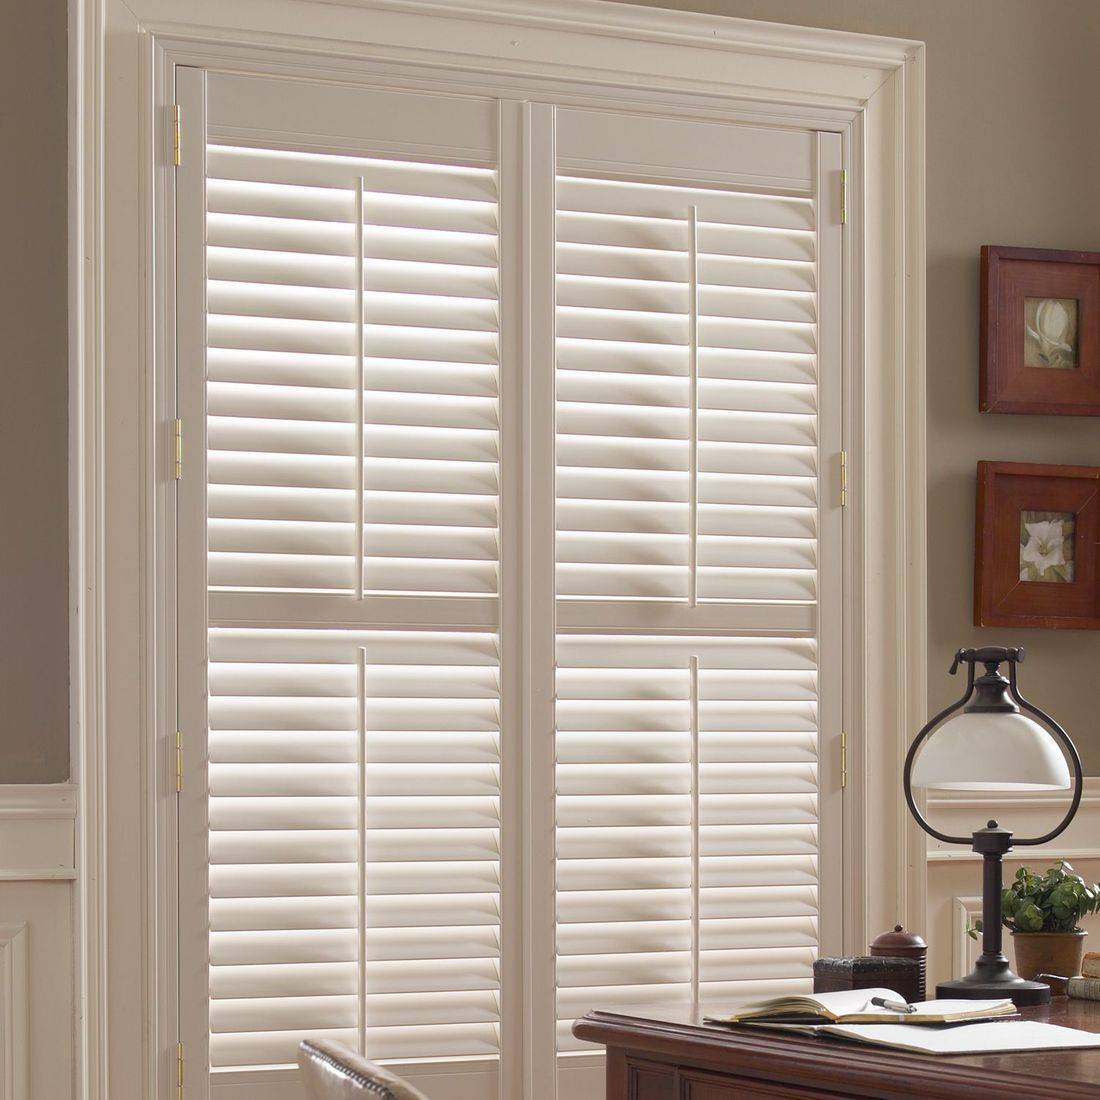 Hunter Douglas Palm Beach Polysatin Shutters are ideal for tough conditions such as extreme light or moisture. They are guaranteed to never warp, crack, fade, chip, peel or discolor.